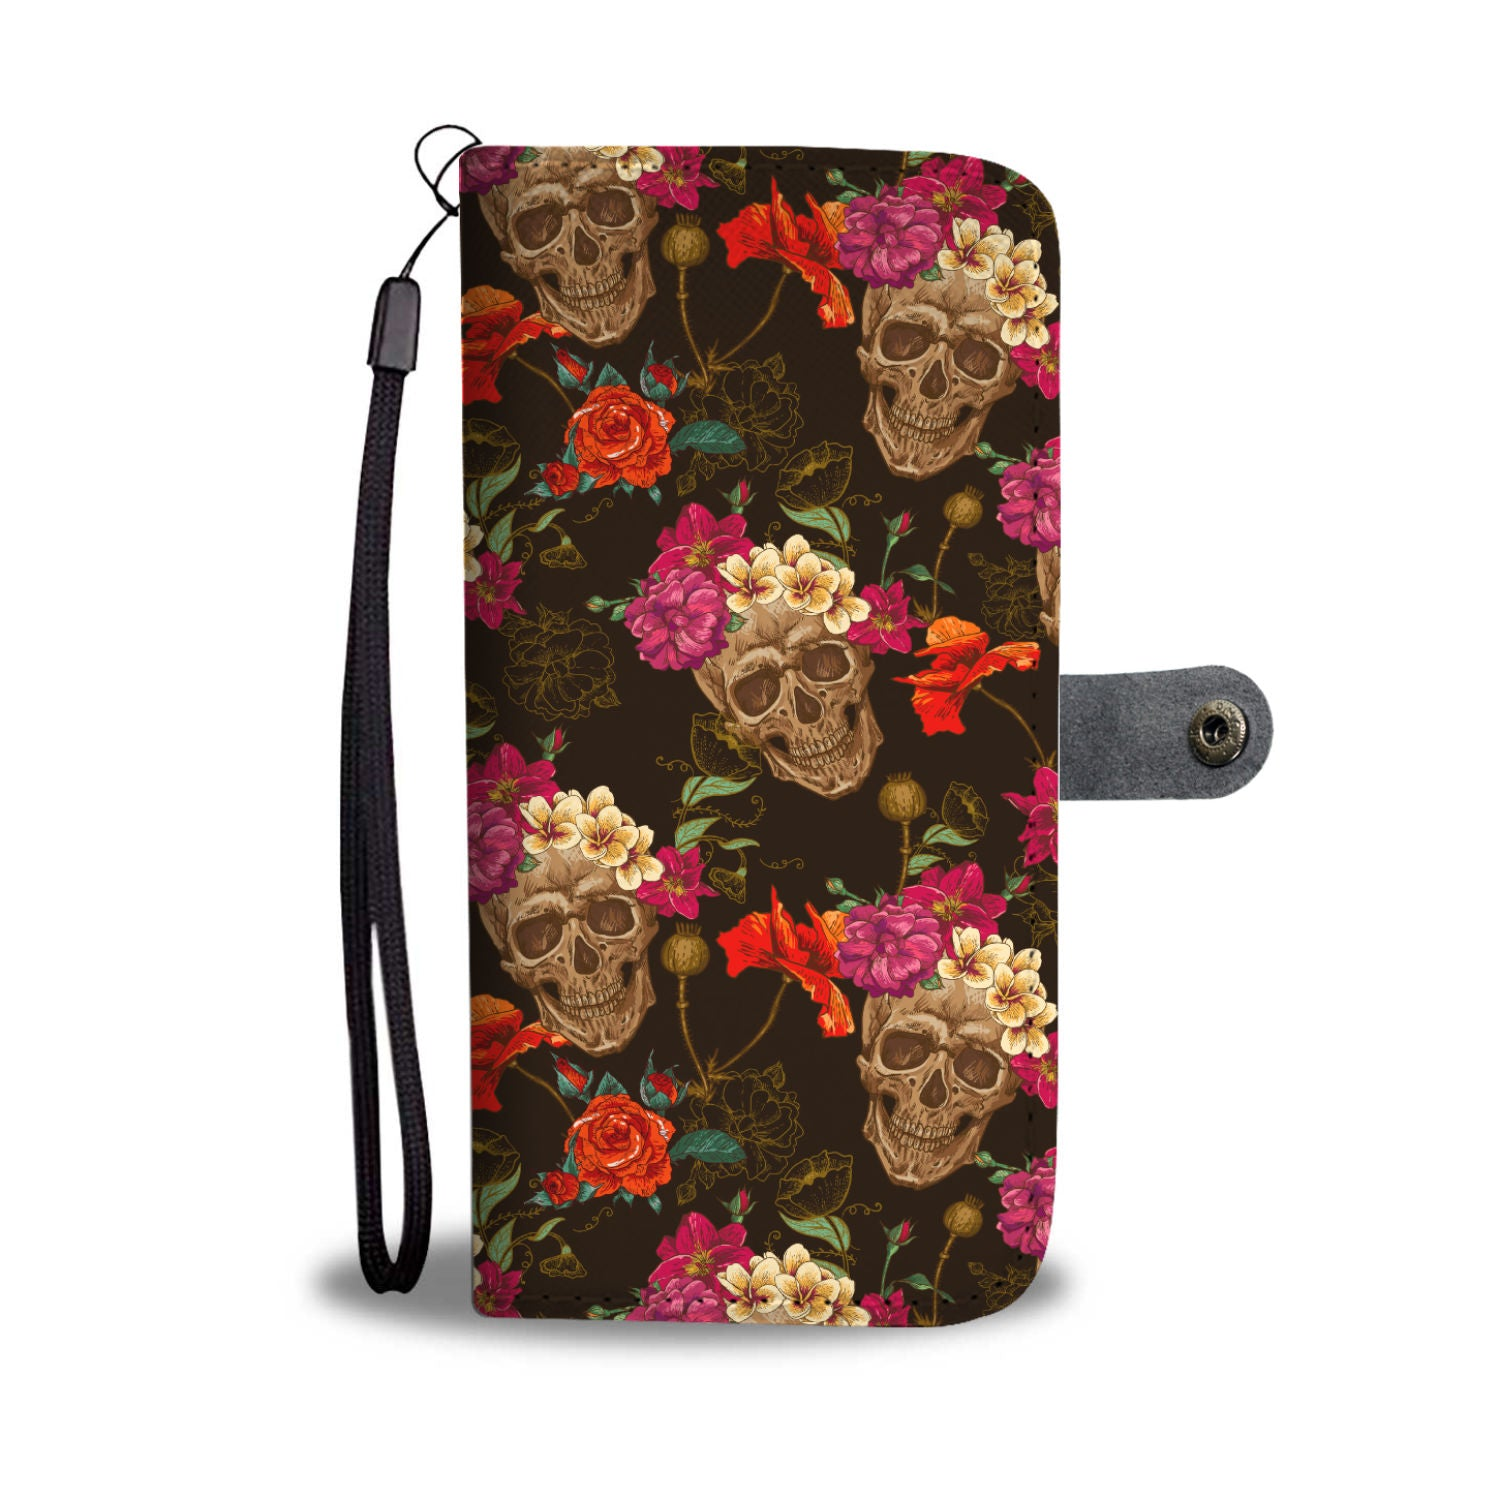 Skull Art Phone Wallet Case 04